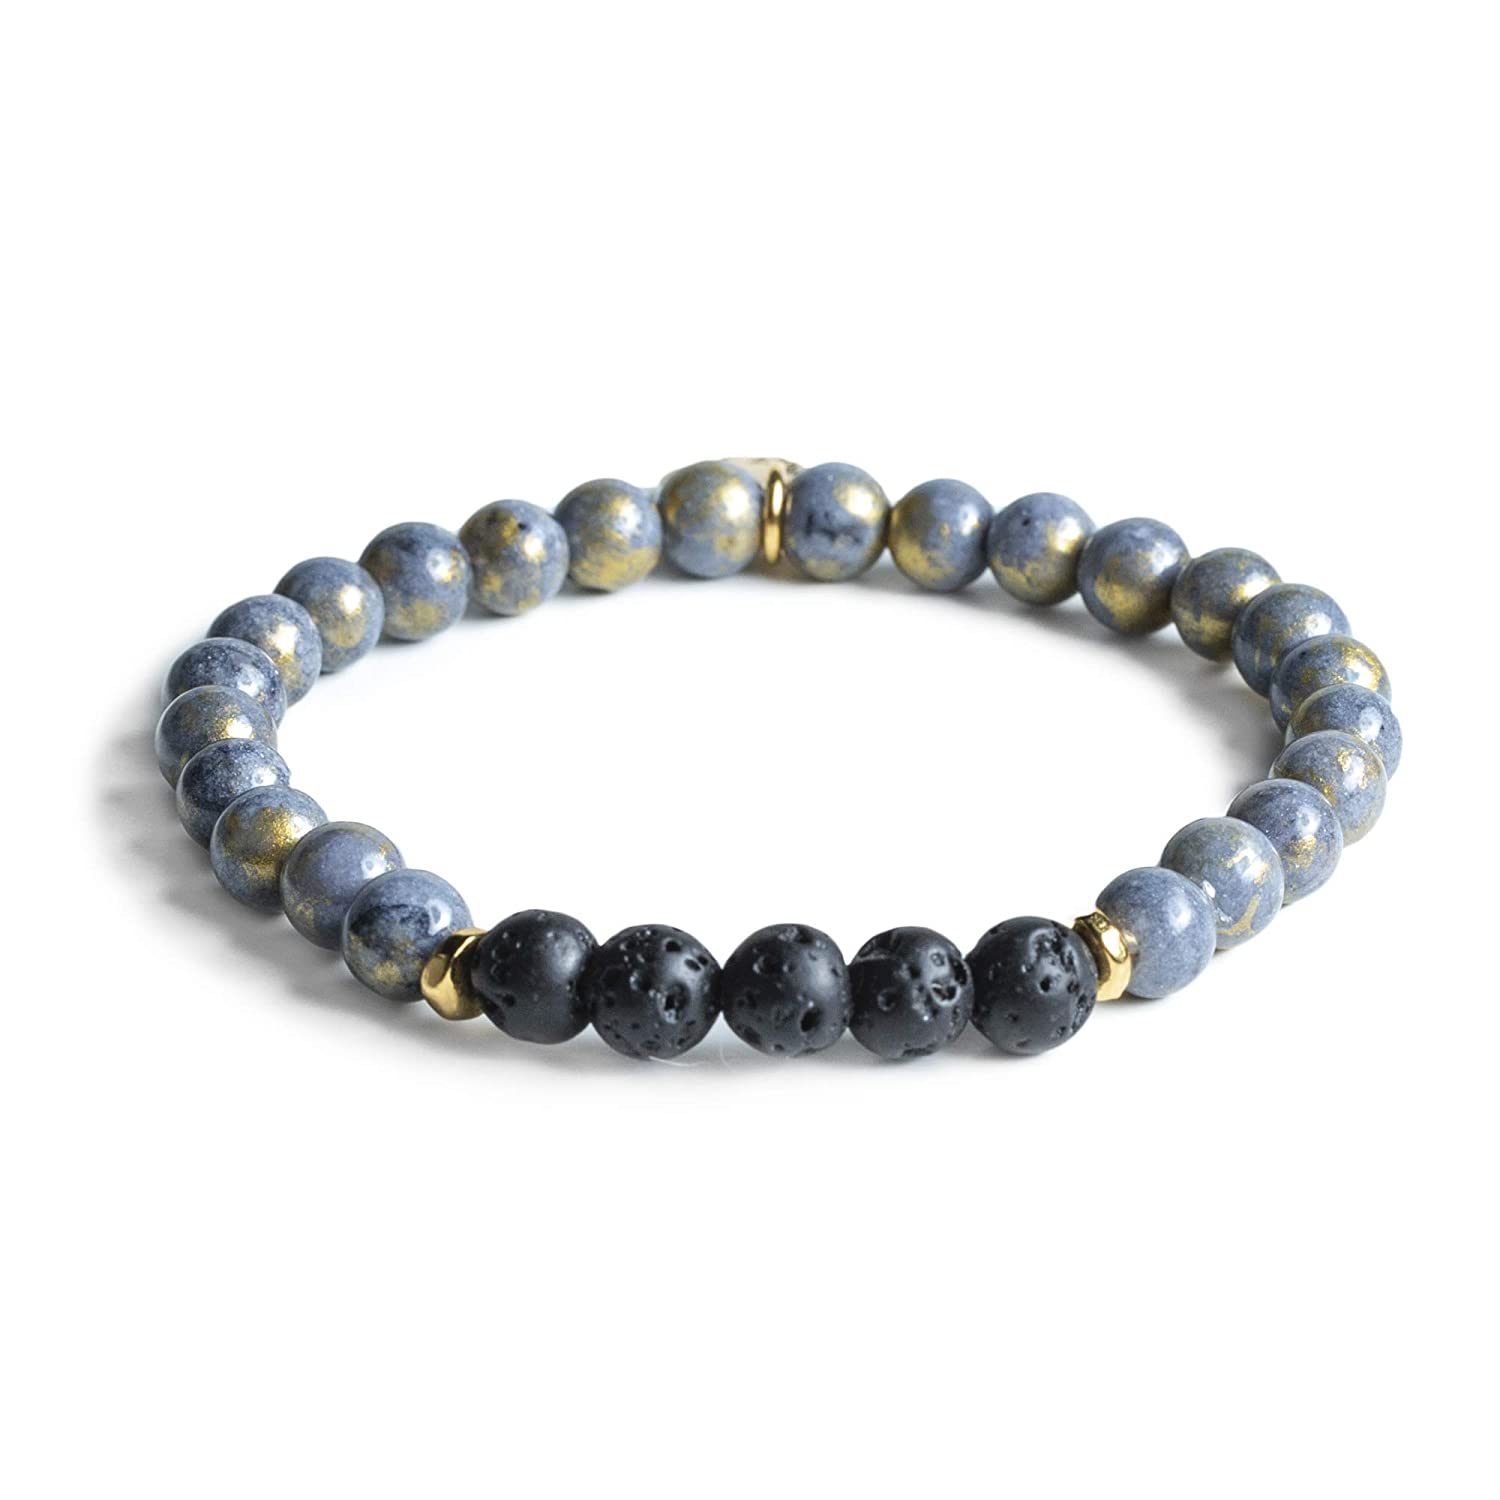 Edens Garden Balboa Bracelet Essential Oil Lava Bracelet or Necklace (Best for Diffusion and Aromatherapy Jewelry)